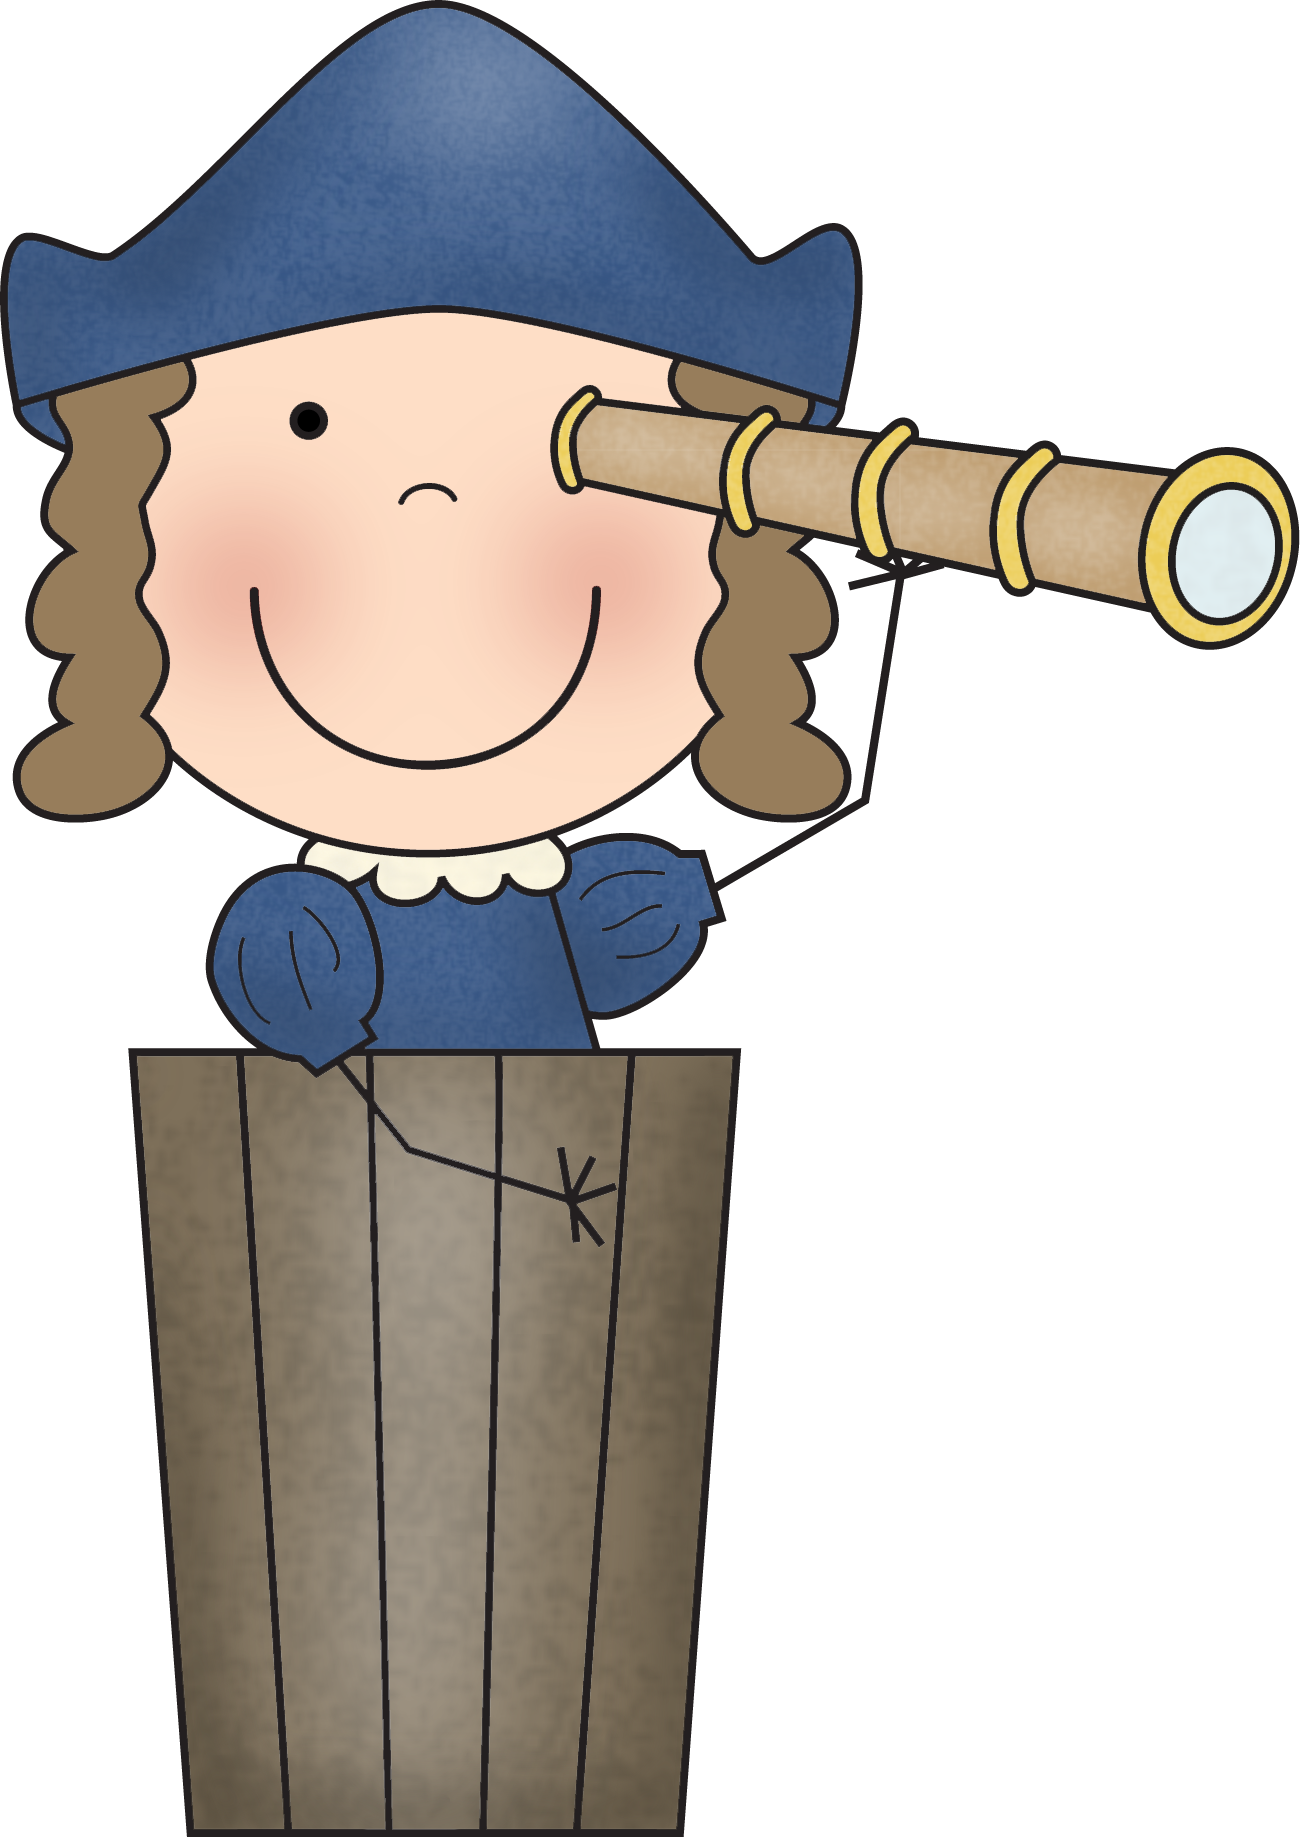 clip art Index of images scrappin. Christopher columbus clipart doodle.